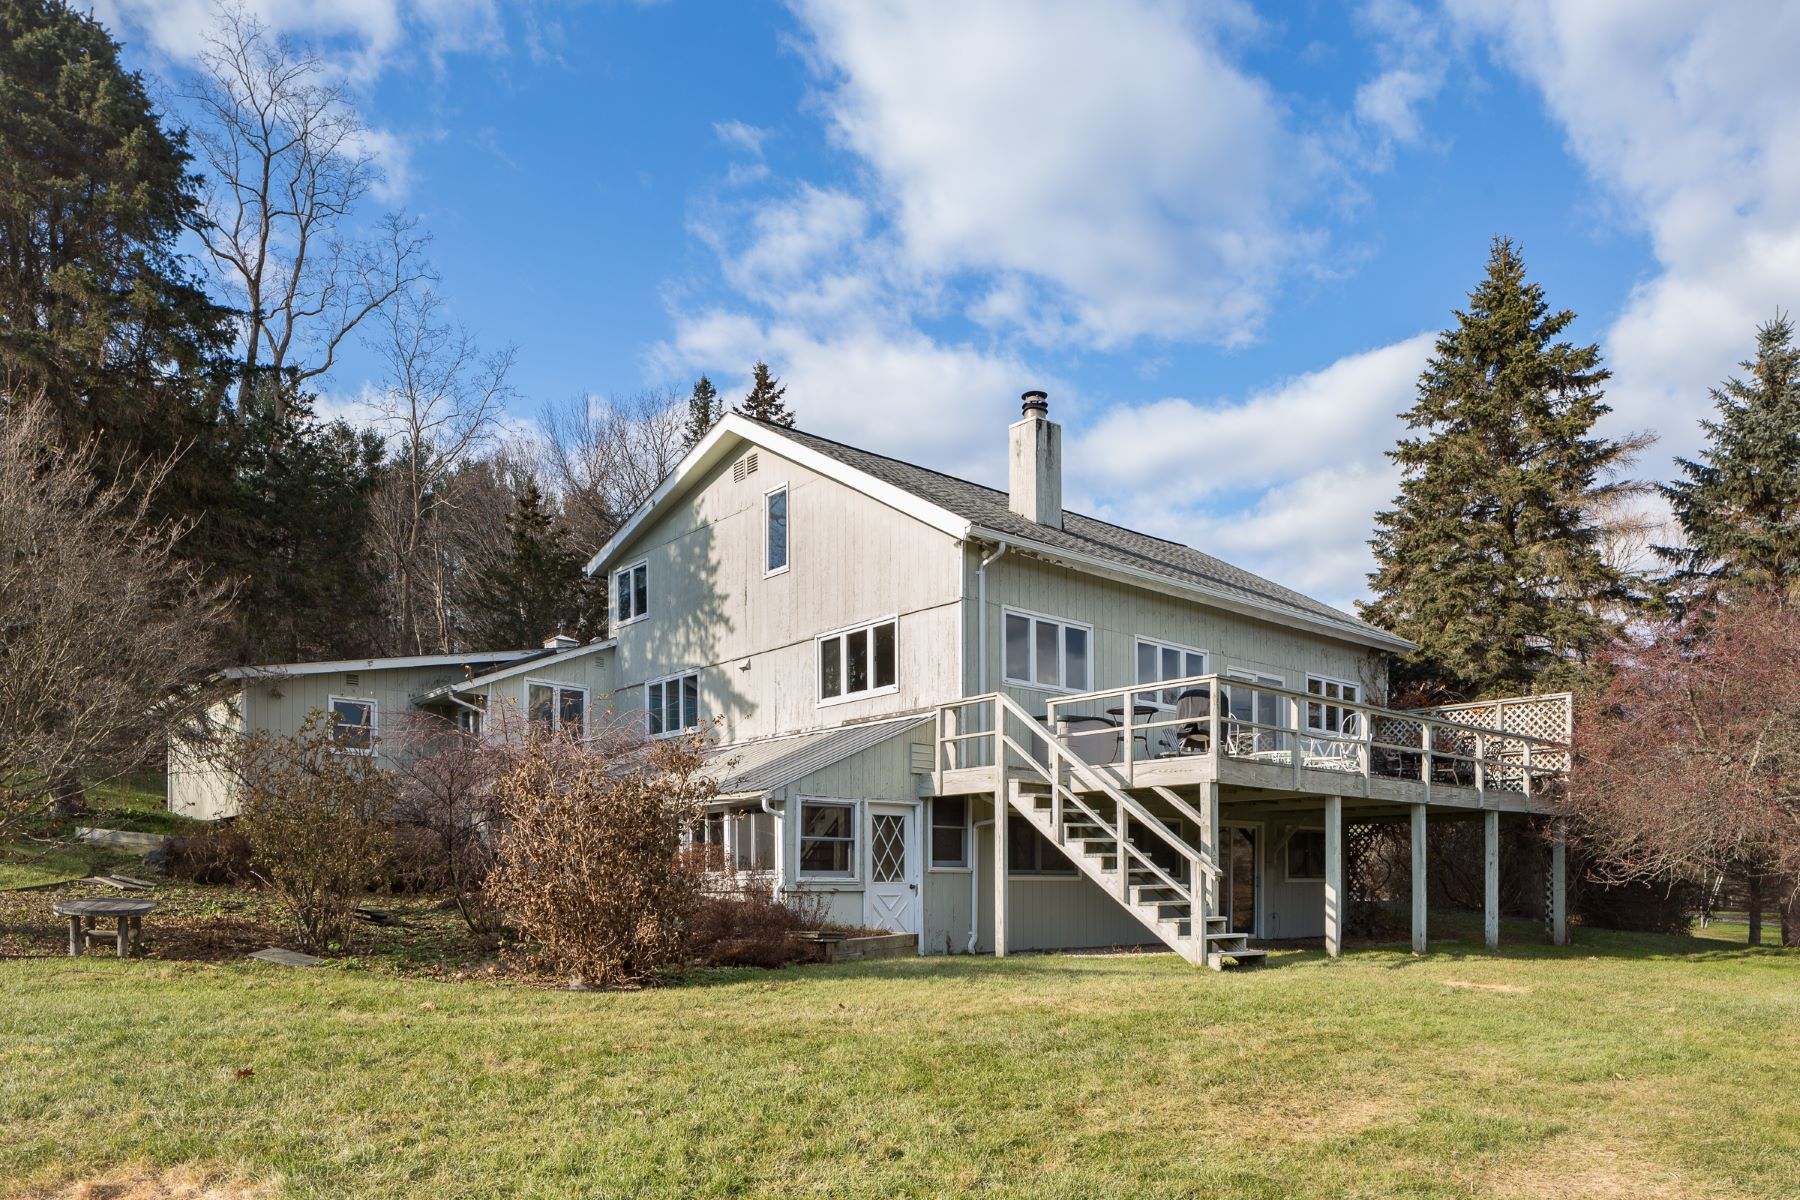 Single Family Home for Sale at Contemporary Country Retreat 1748 County Route 5 Canaan, New York 12029 United States